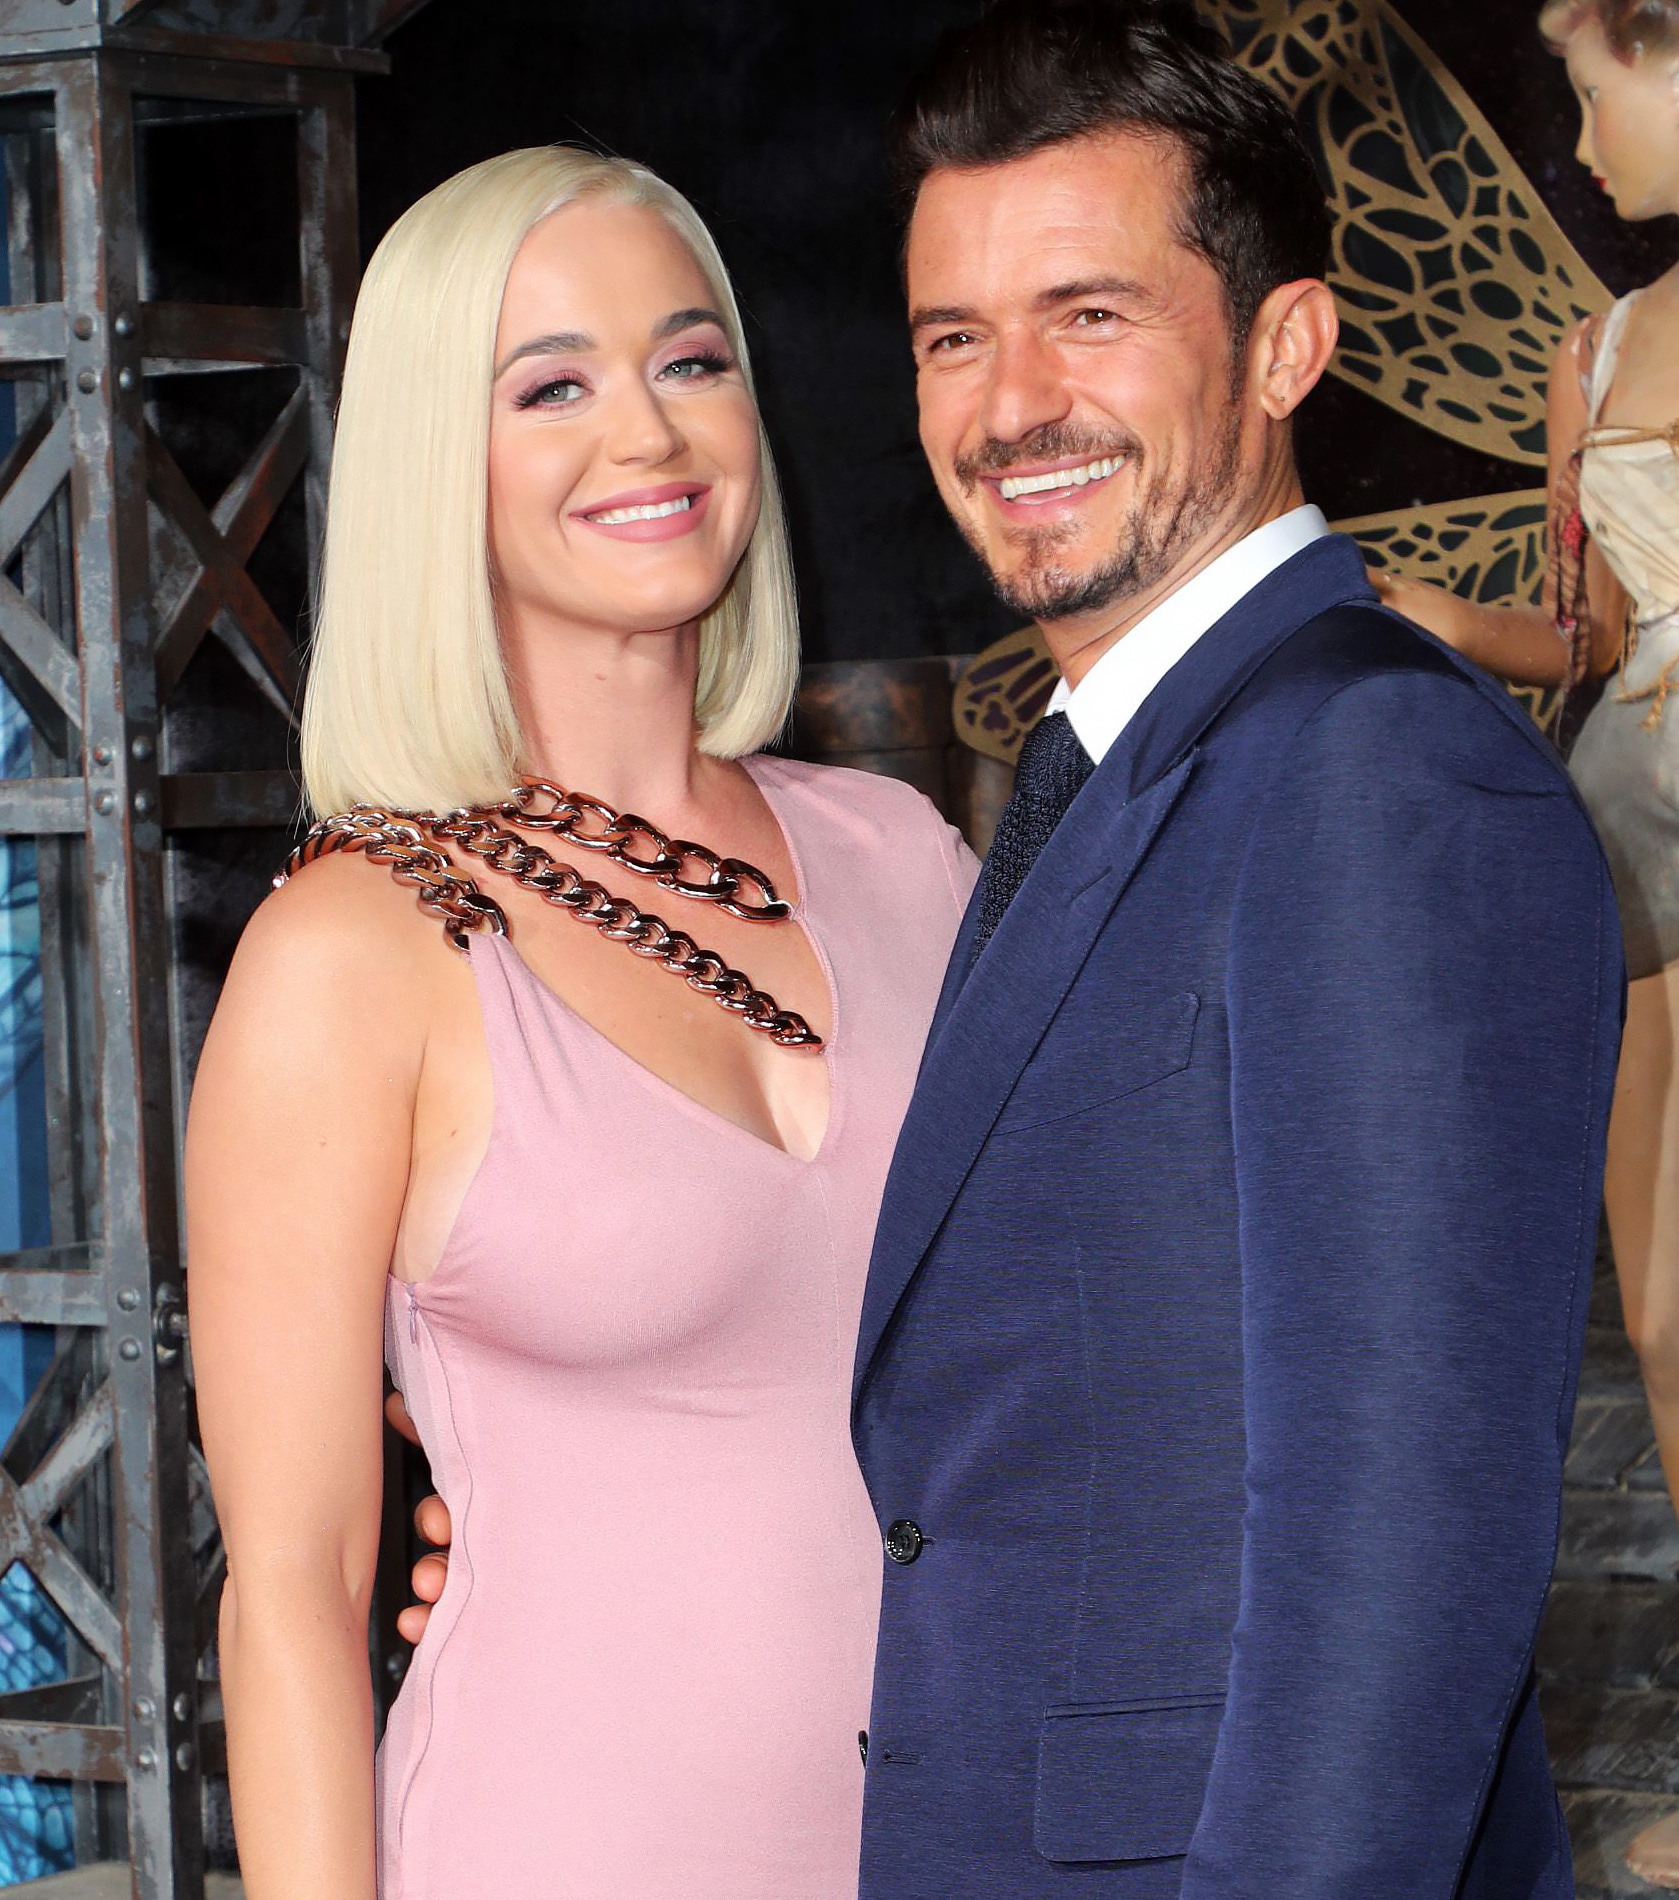 Katy Perry Explains How Quarantine Has Been a Good Test for Her Relationship With Orlando Bloom